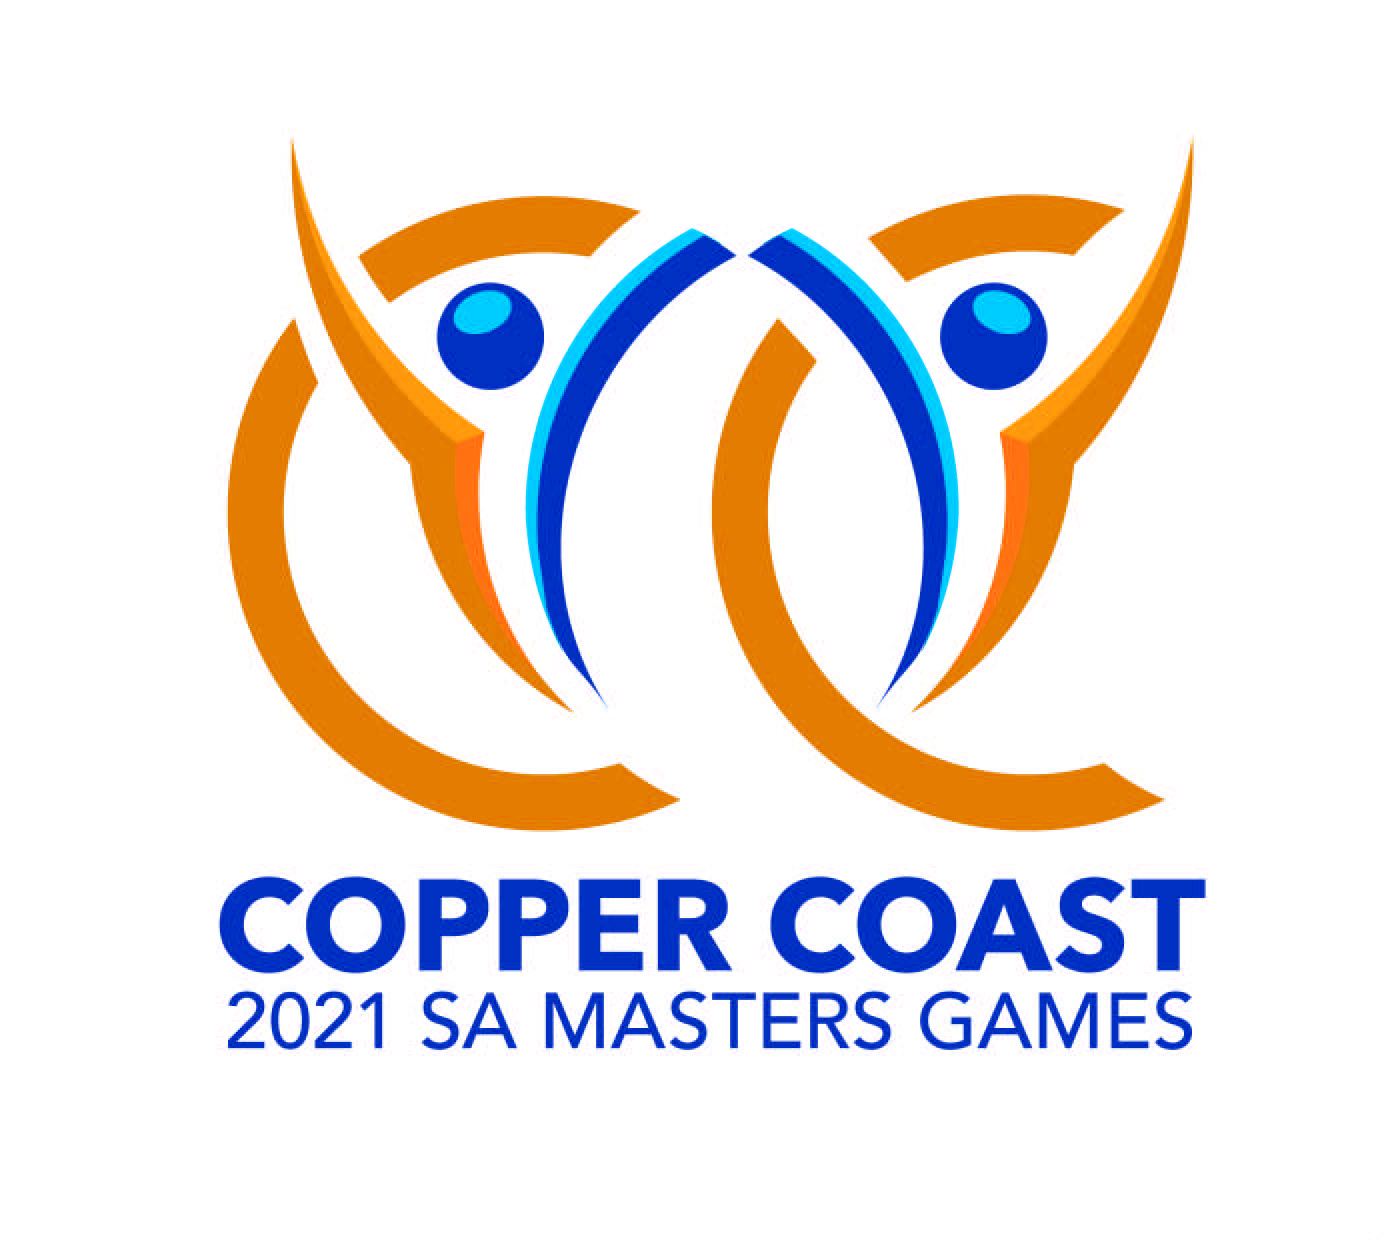 2021 South Australian Masters Games